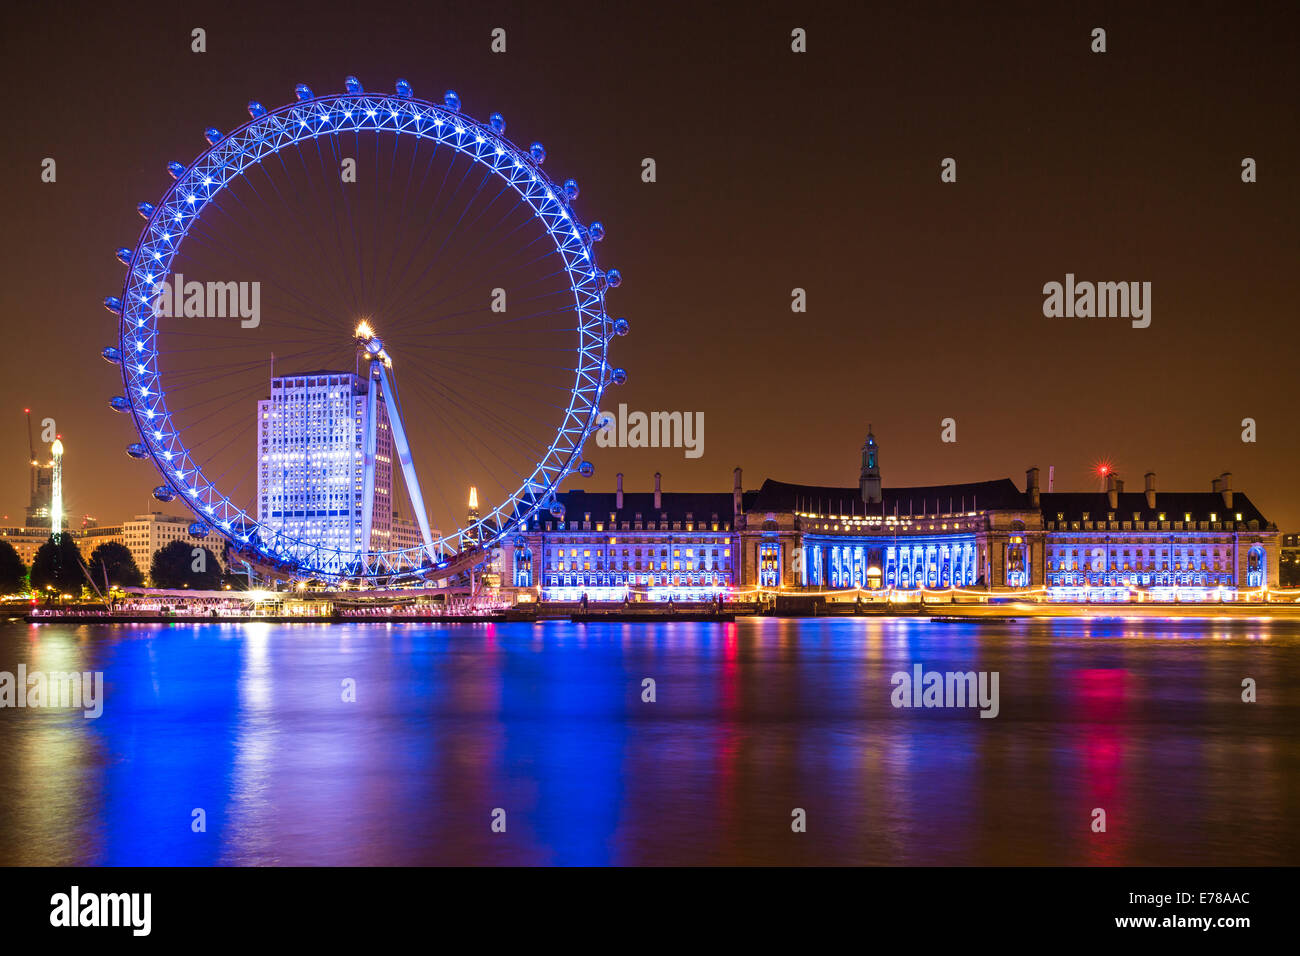 The London Eye, County Hall and Shell Centre buildings at night on the Thames river in London, England. - Stock Image